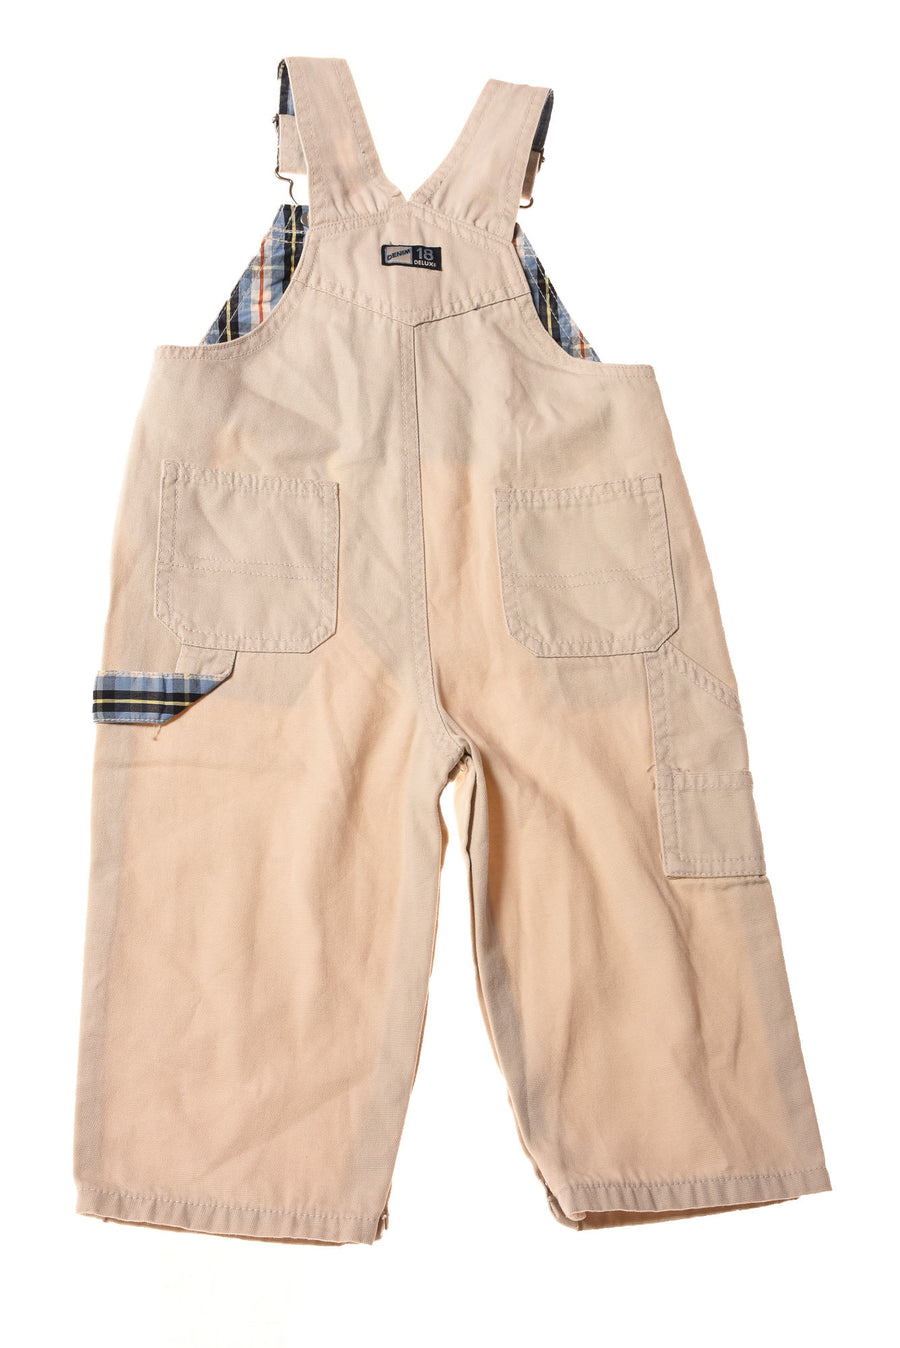 NEW The Children's Place Baby Boy's Jeans 18 Months Tan